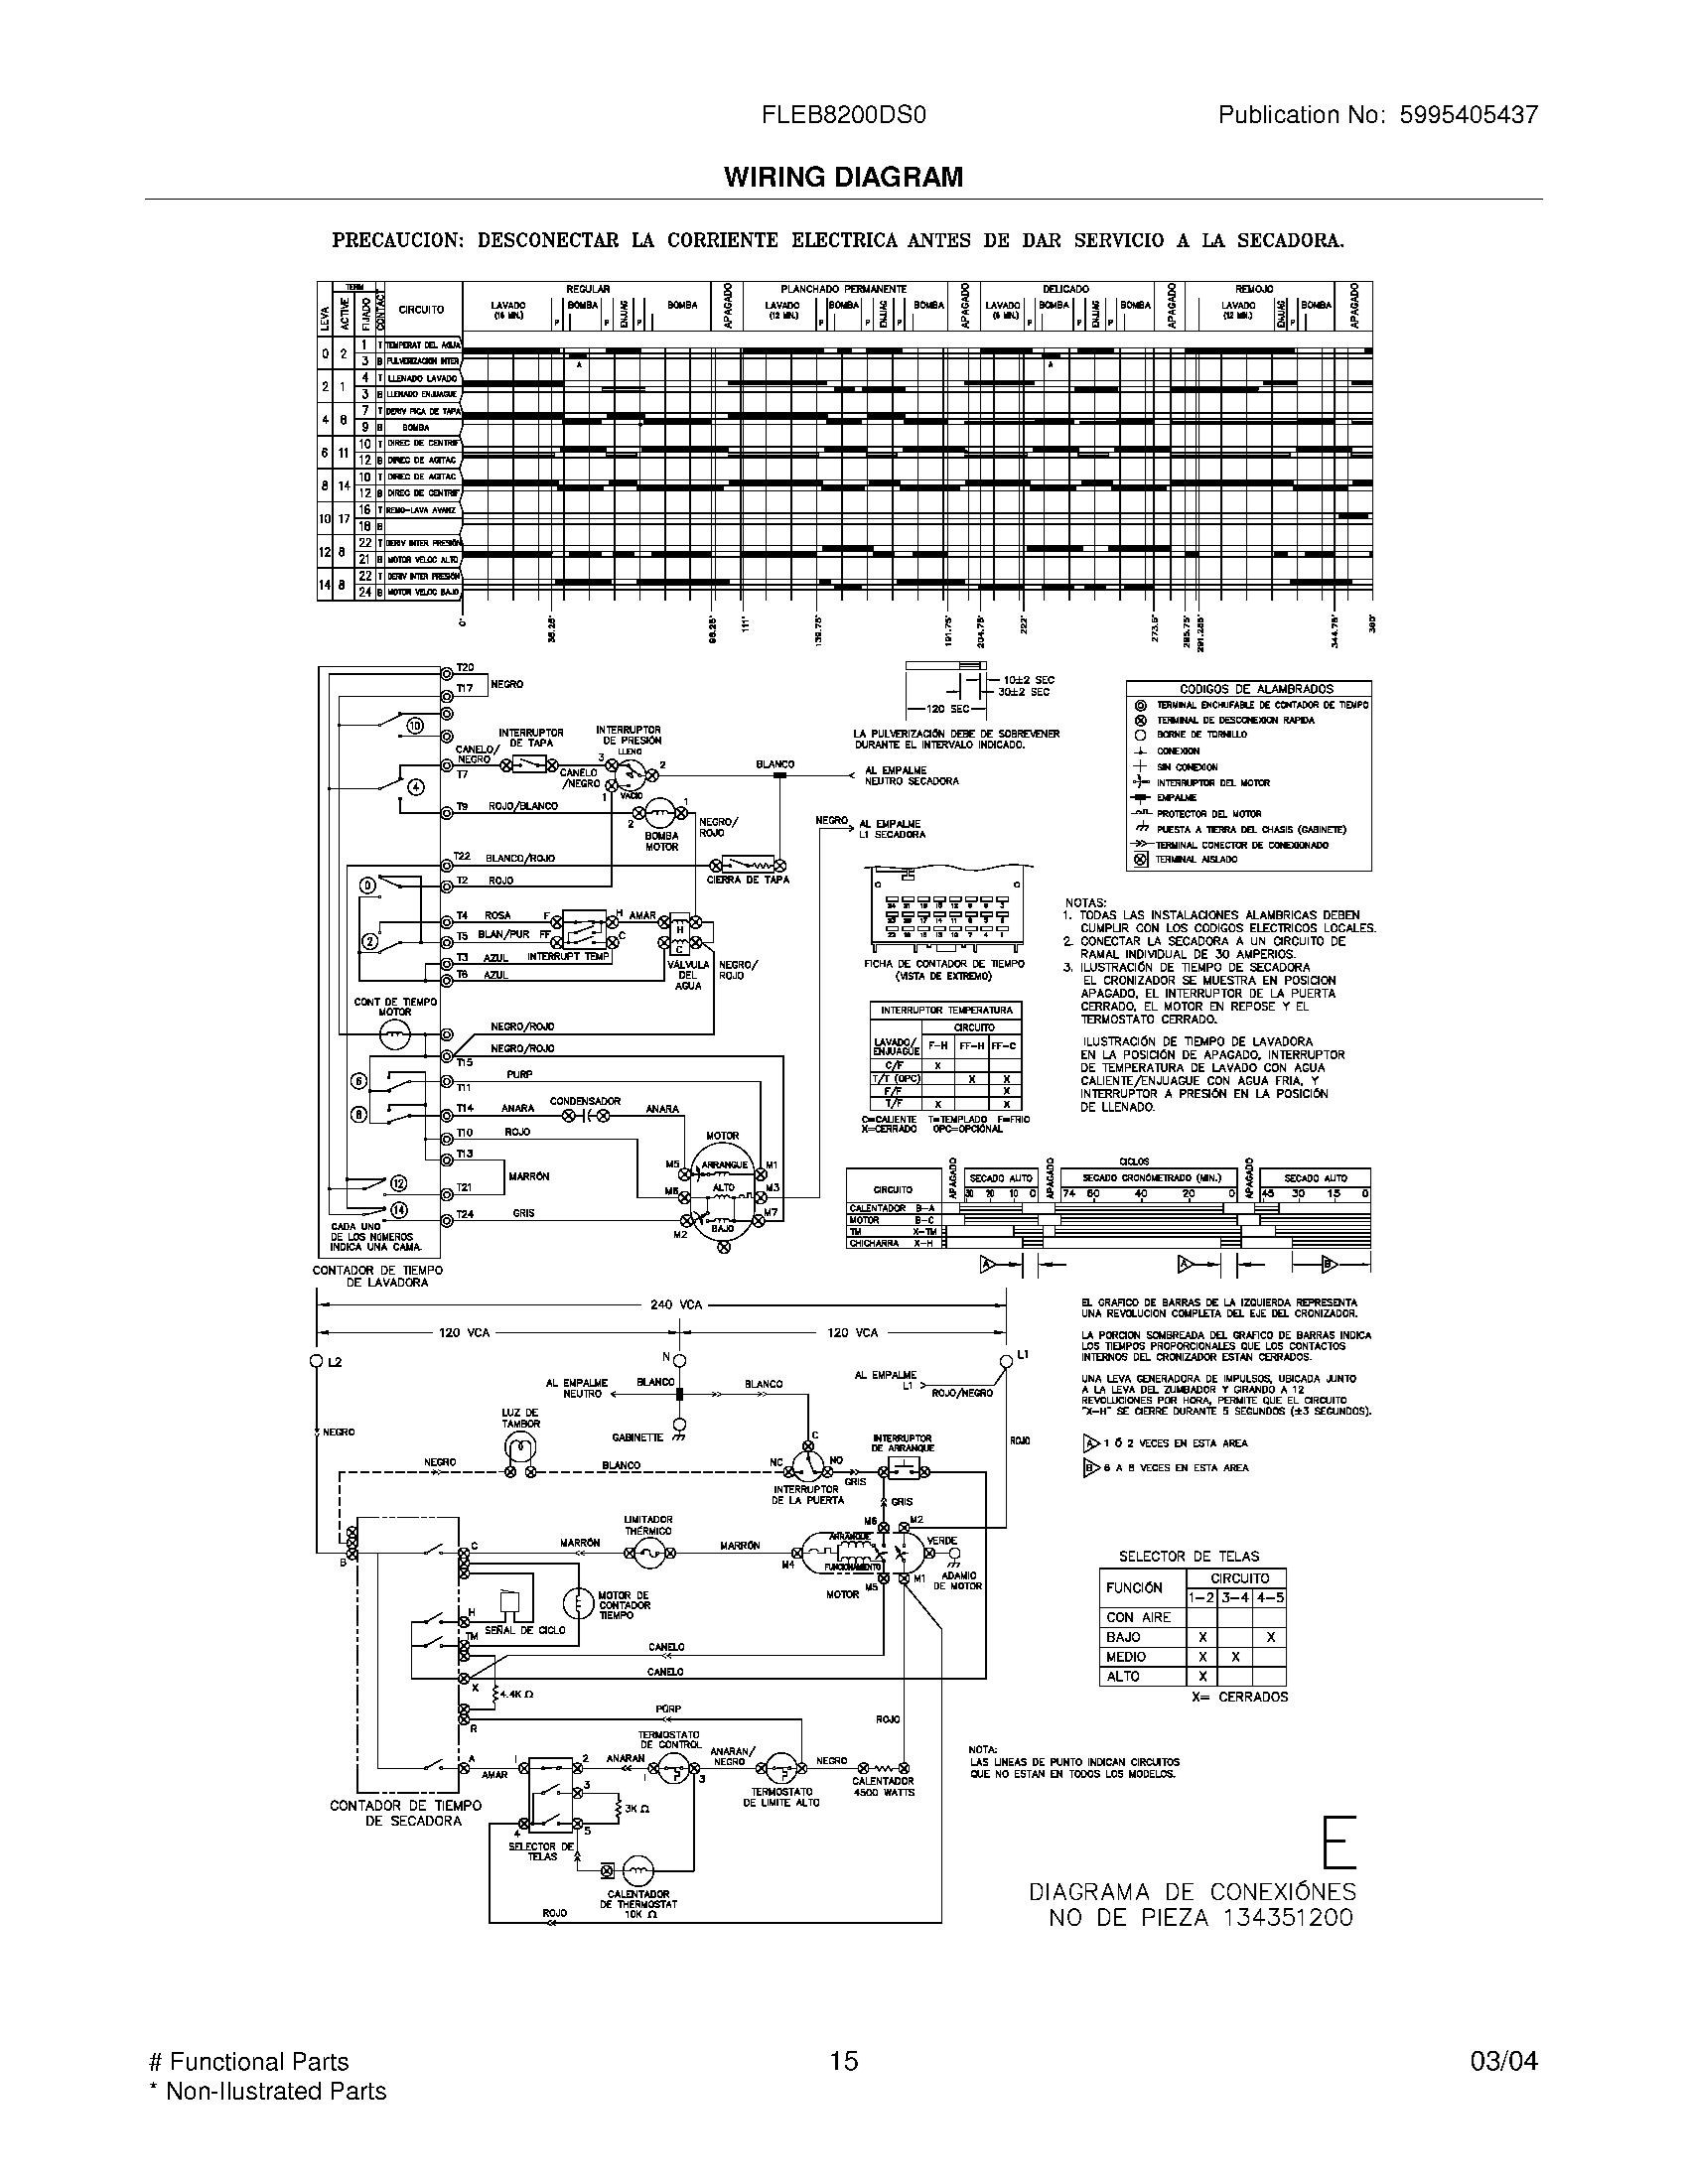 ElectroluxImg_19000101 20150717_00080814?width\=1000 crosley dryer wiring diagram wiring diagram shrutiradio frigidaire gallery dryer wiring diagram at crackthecode.co